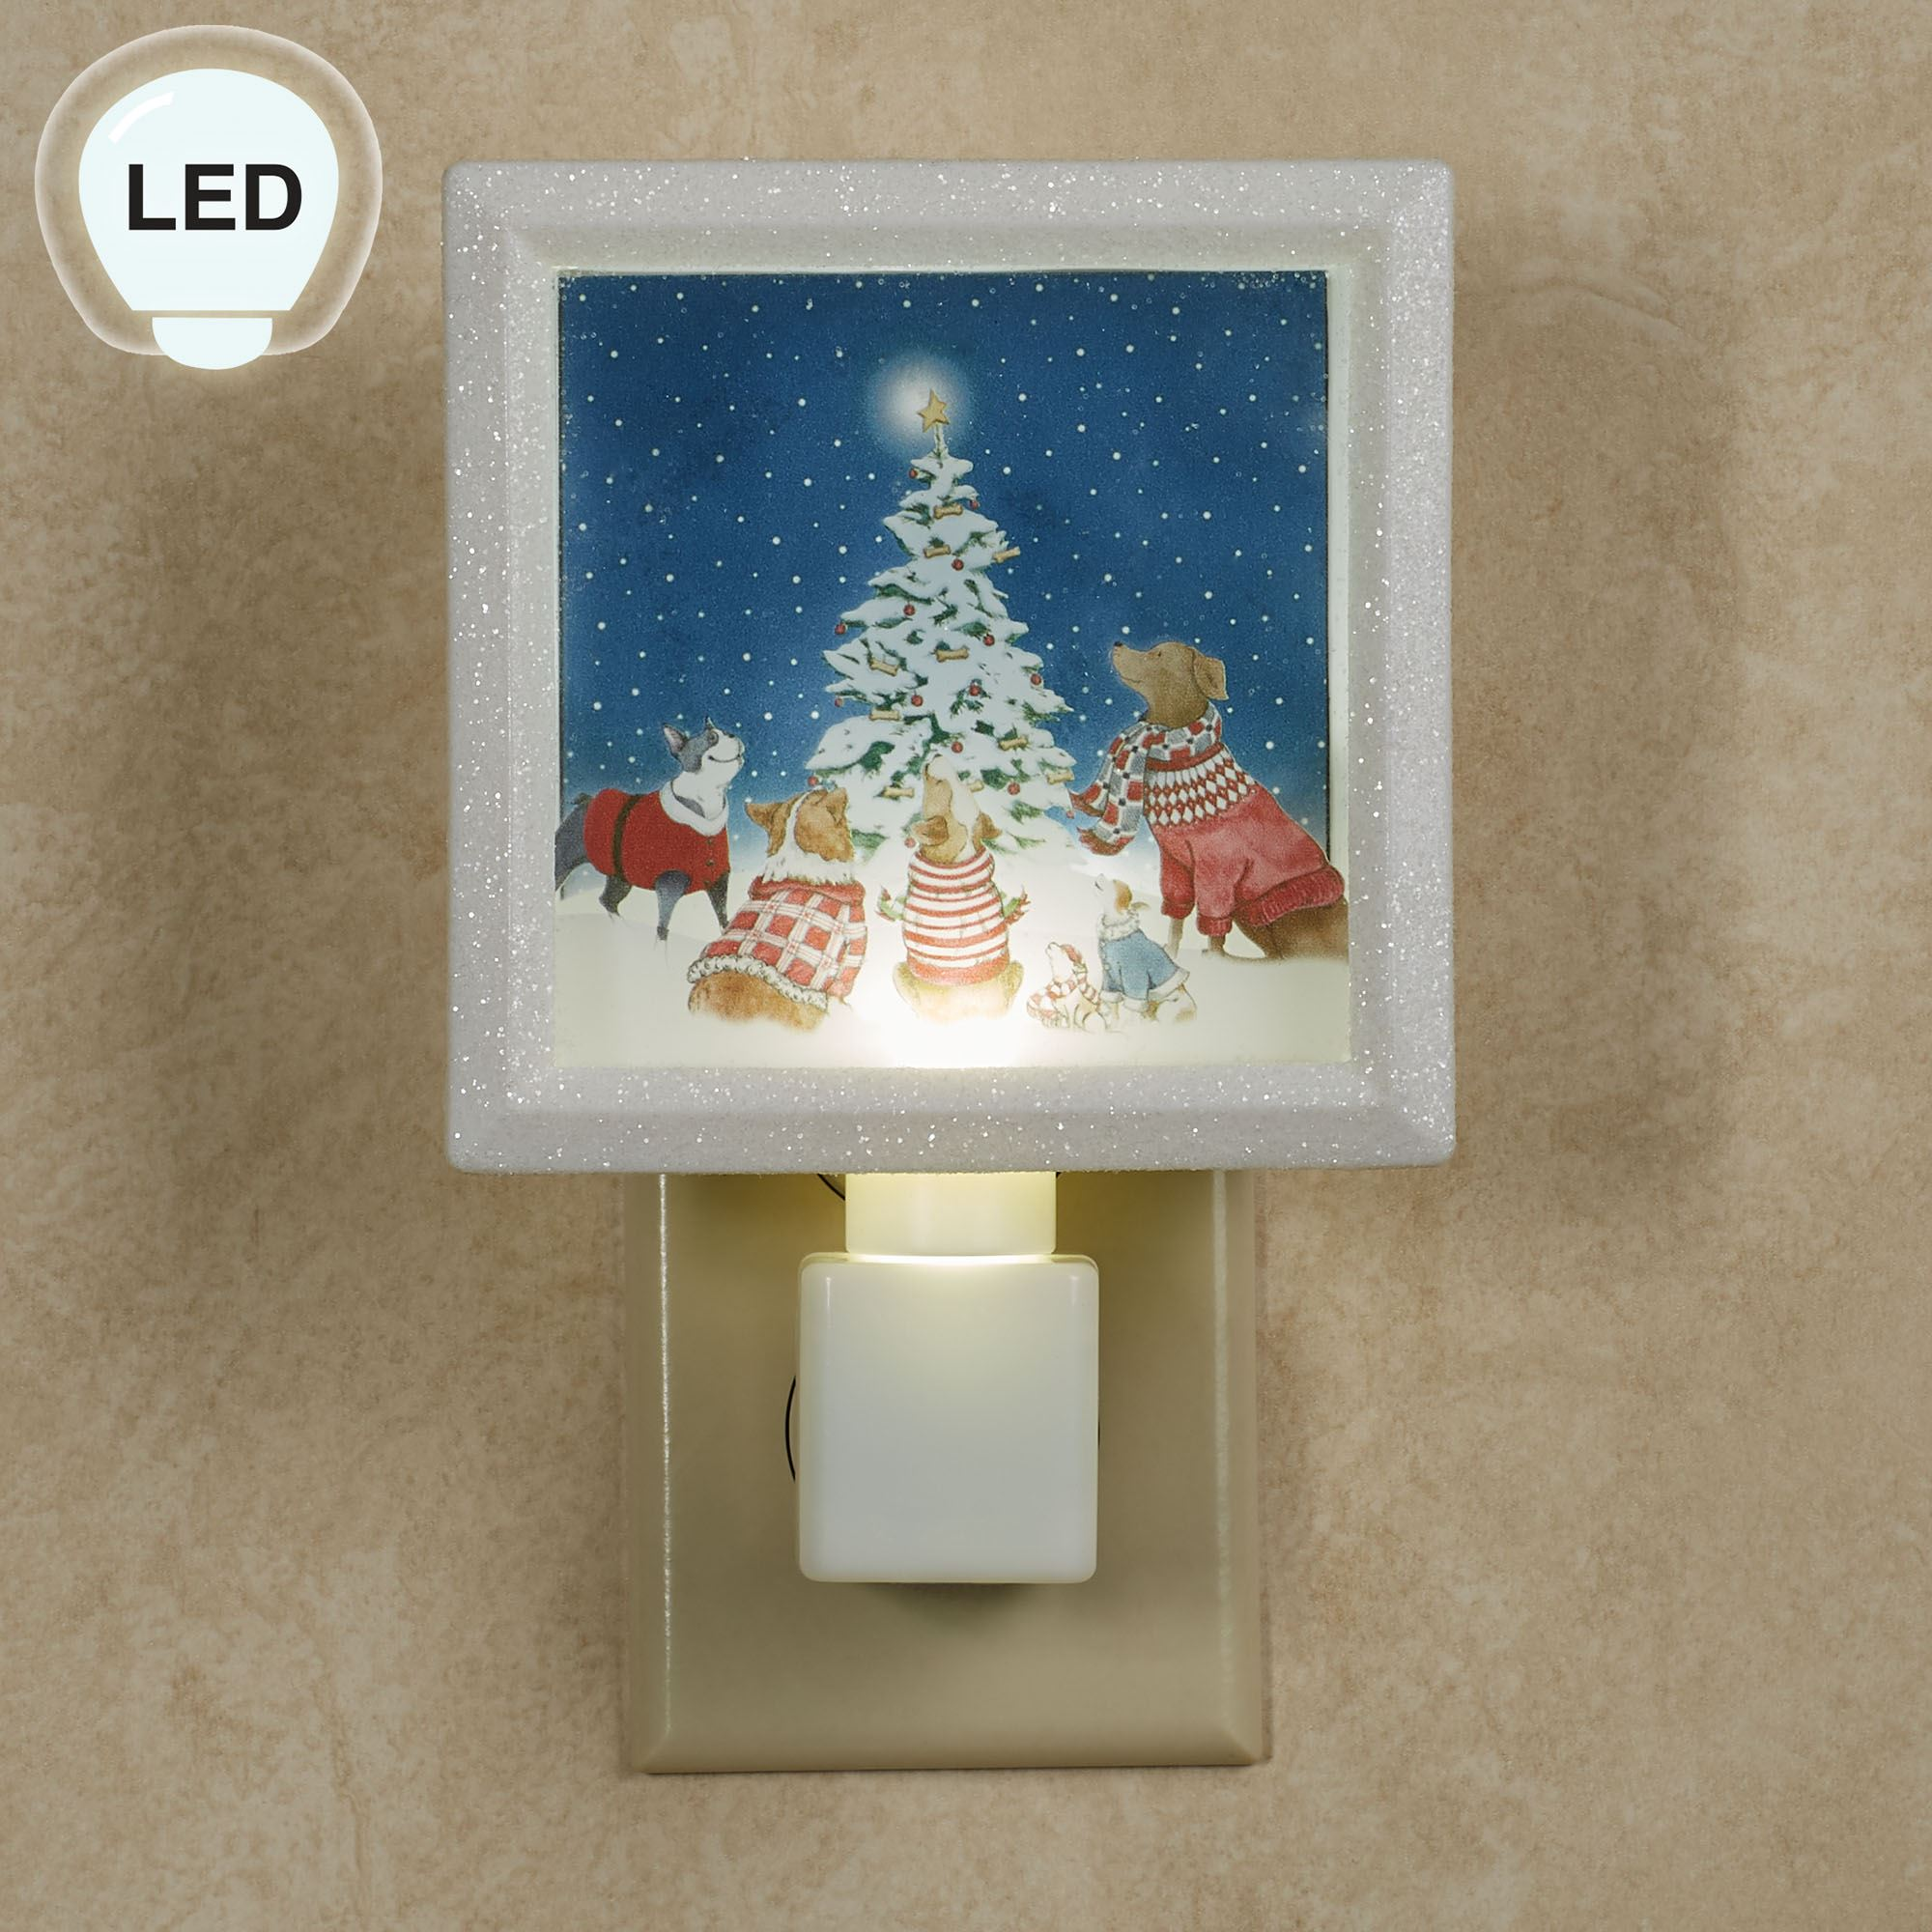 Dogs Around Tree LED Nightlight